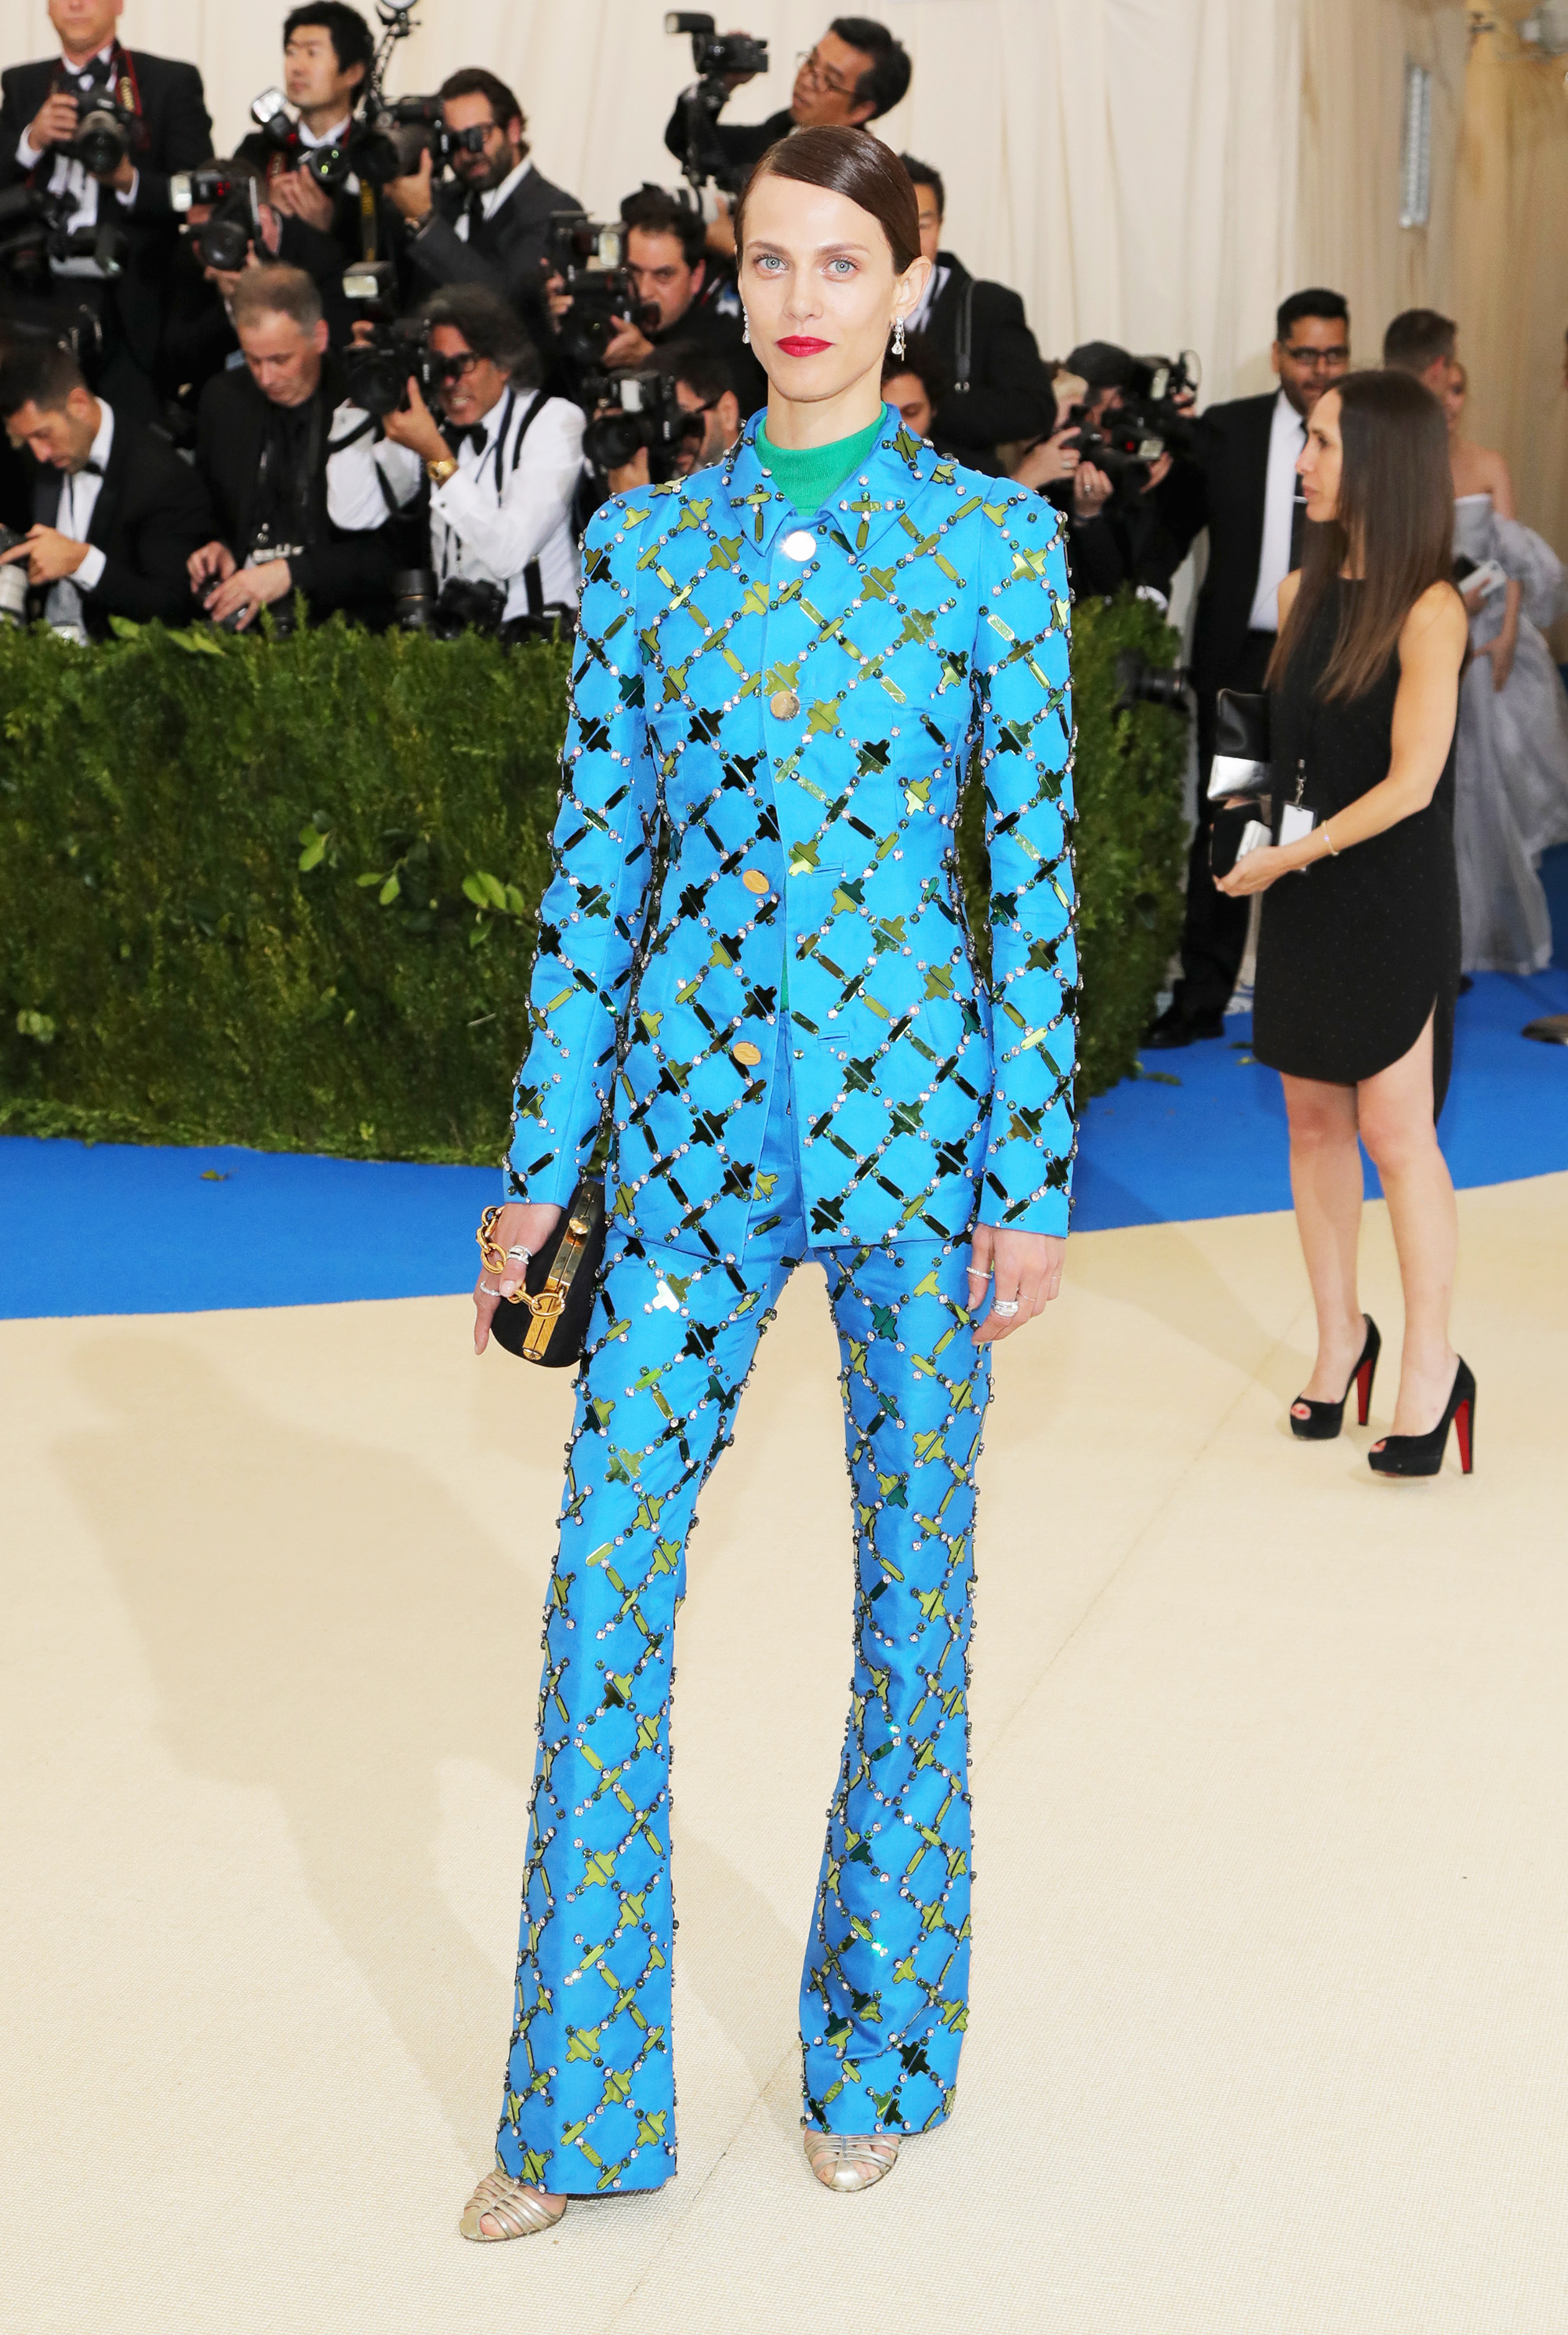 Aymeline Valade attends The Metropolitan Museum of Art's Costume Institute benefit gala celebrating the opening of the Rei Kawakubo/Comme des Garçons: Art of the In-Between exhibition in New York City, on May 1, 2017.